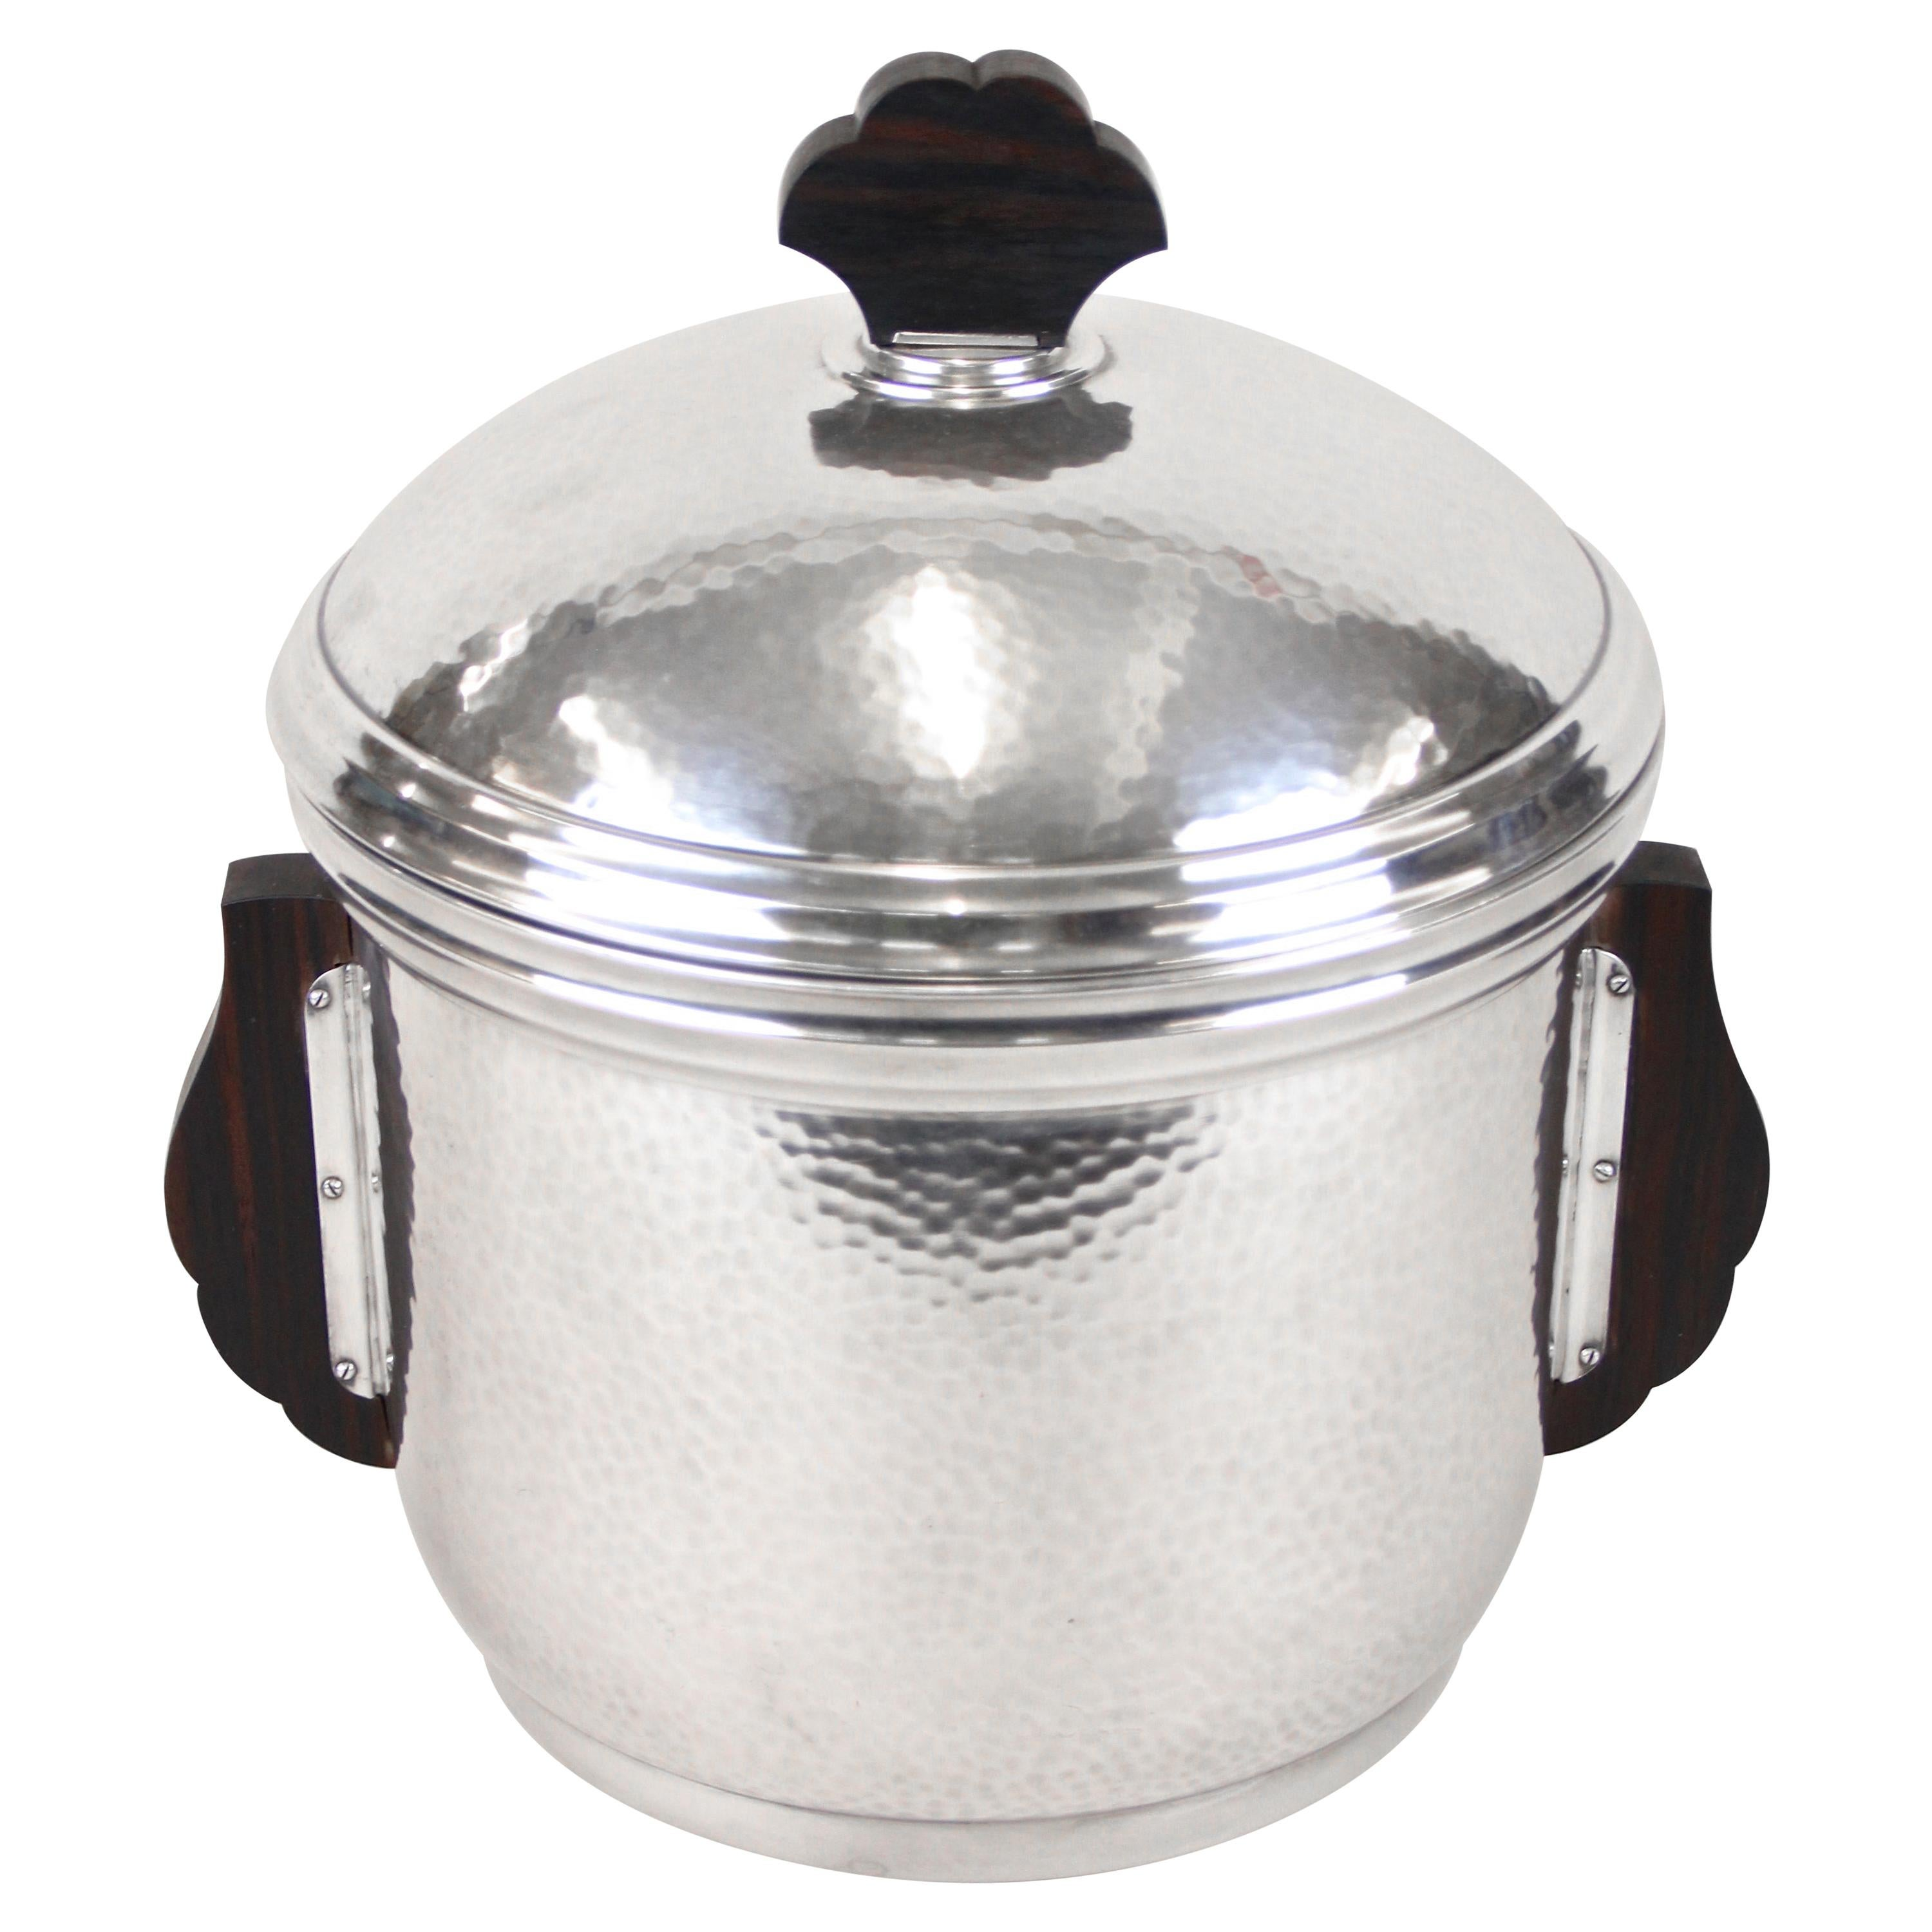 Silvered Ice Bucket with Lid and Palisander Handles by Wmf, Germany, circa 1915